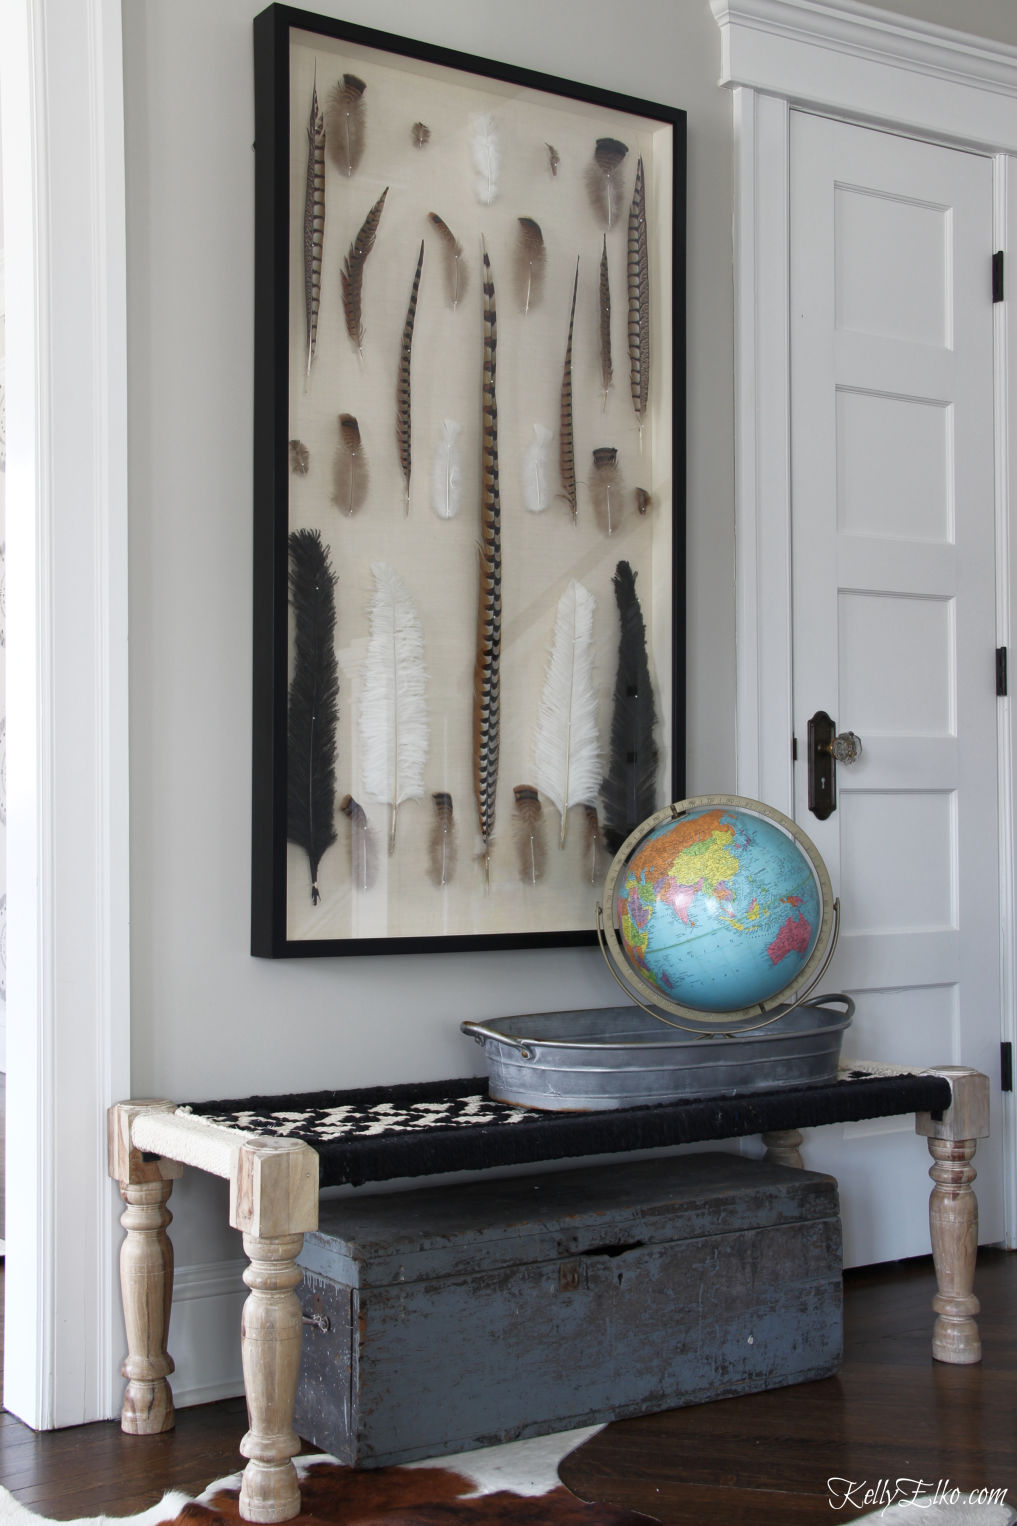 Love this huge feather shadow box in this black and white foyer kellyelko.com #foyer #foyerdecor #benches #art #shadowbox #vintagedecor #bohodecor #eclecticdecor